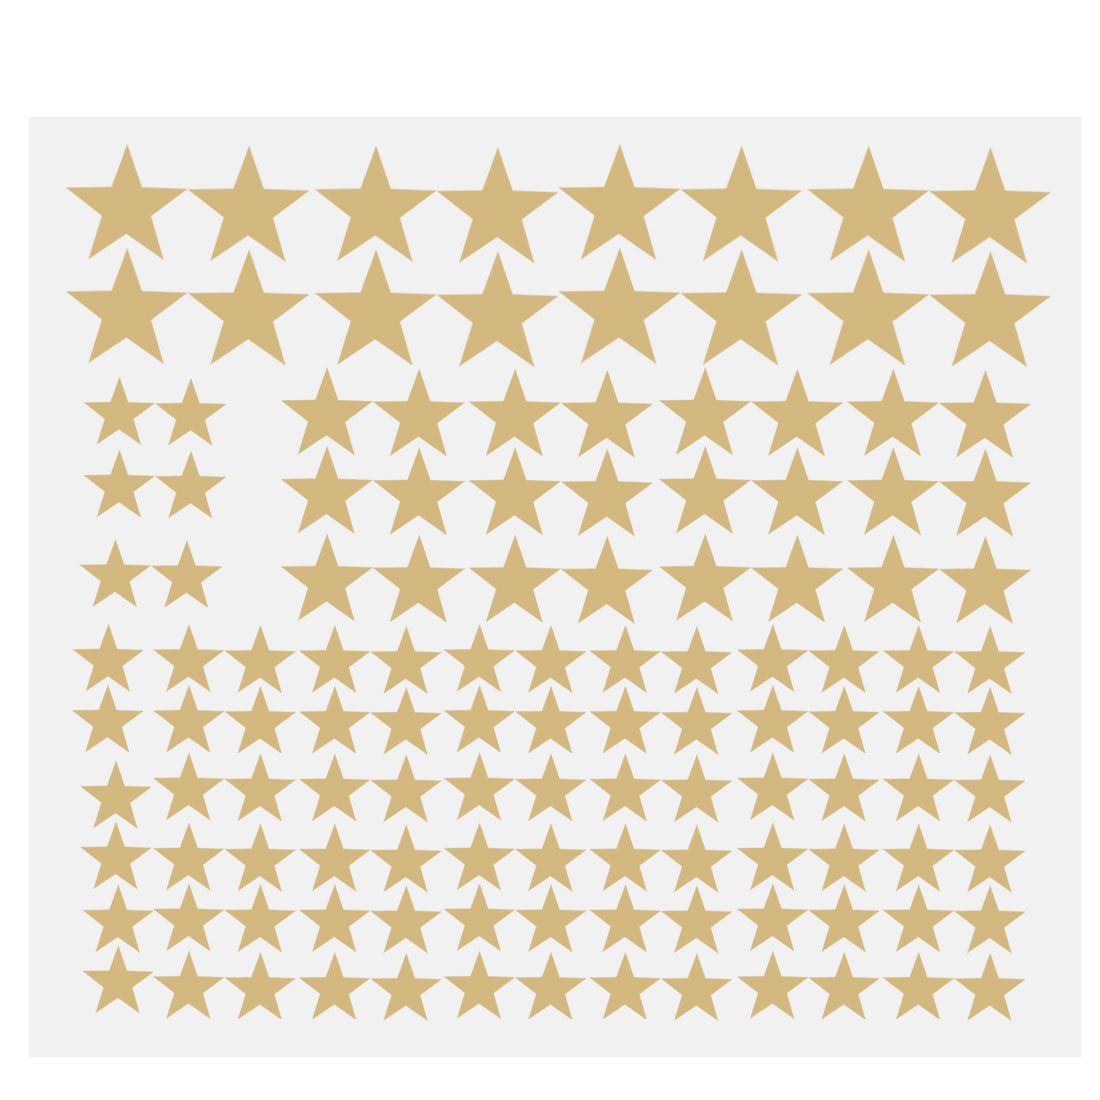 110pcs Star Pattern Wall Stickers Removable Art Decal for Bedroom Gold Tone